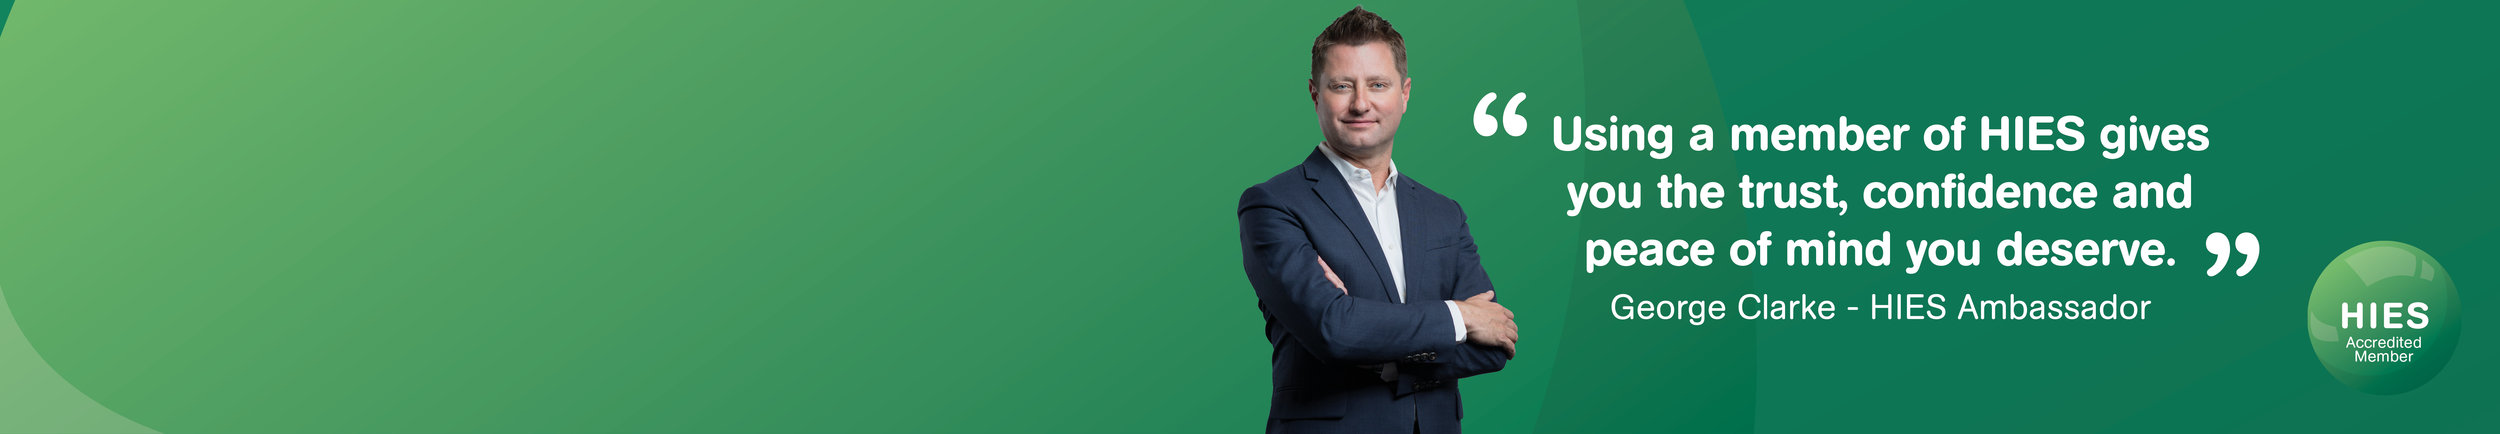 George Clarke - New Brand Ambassador for HIES